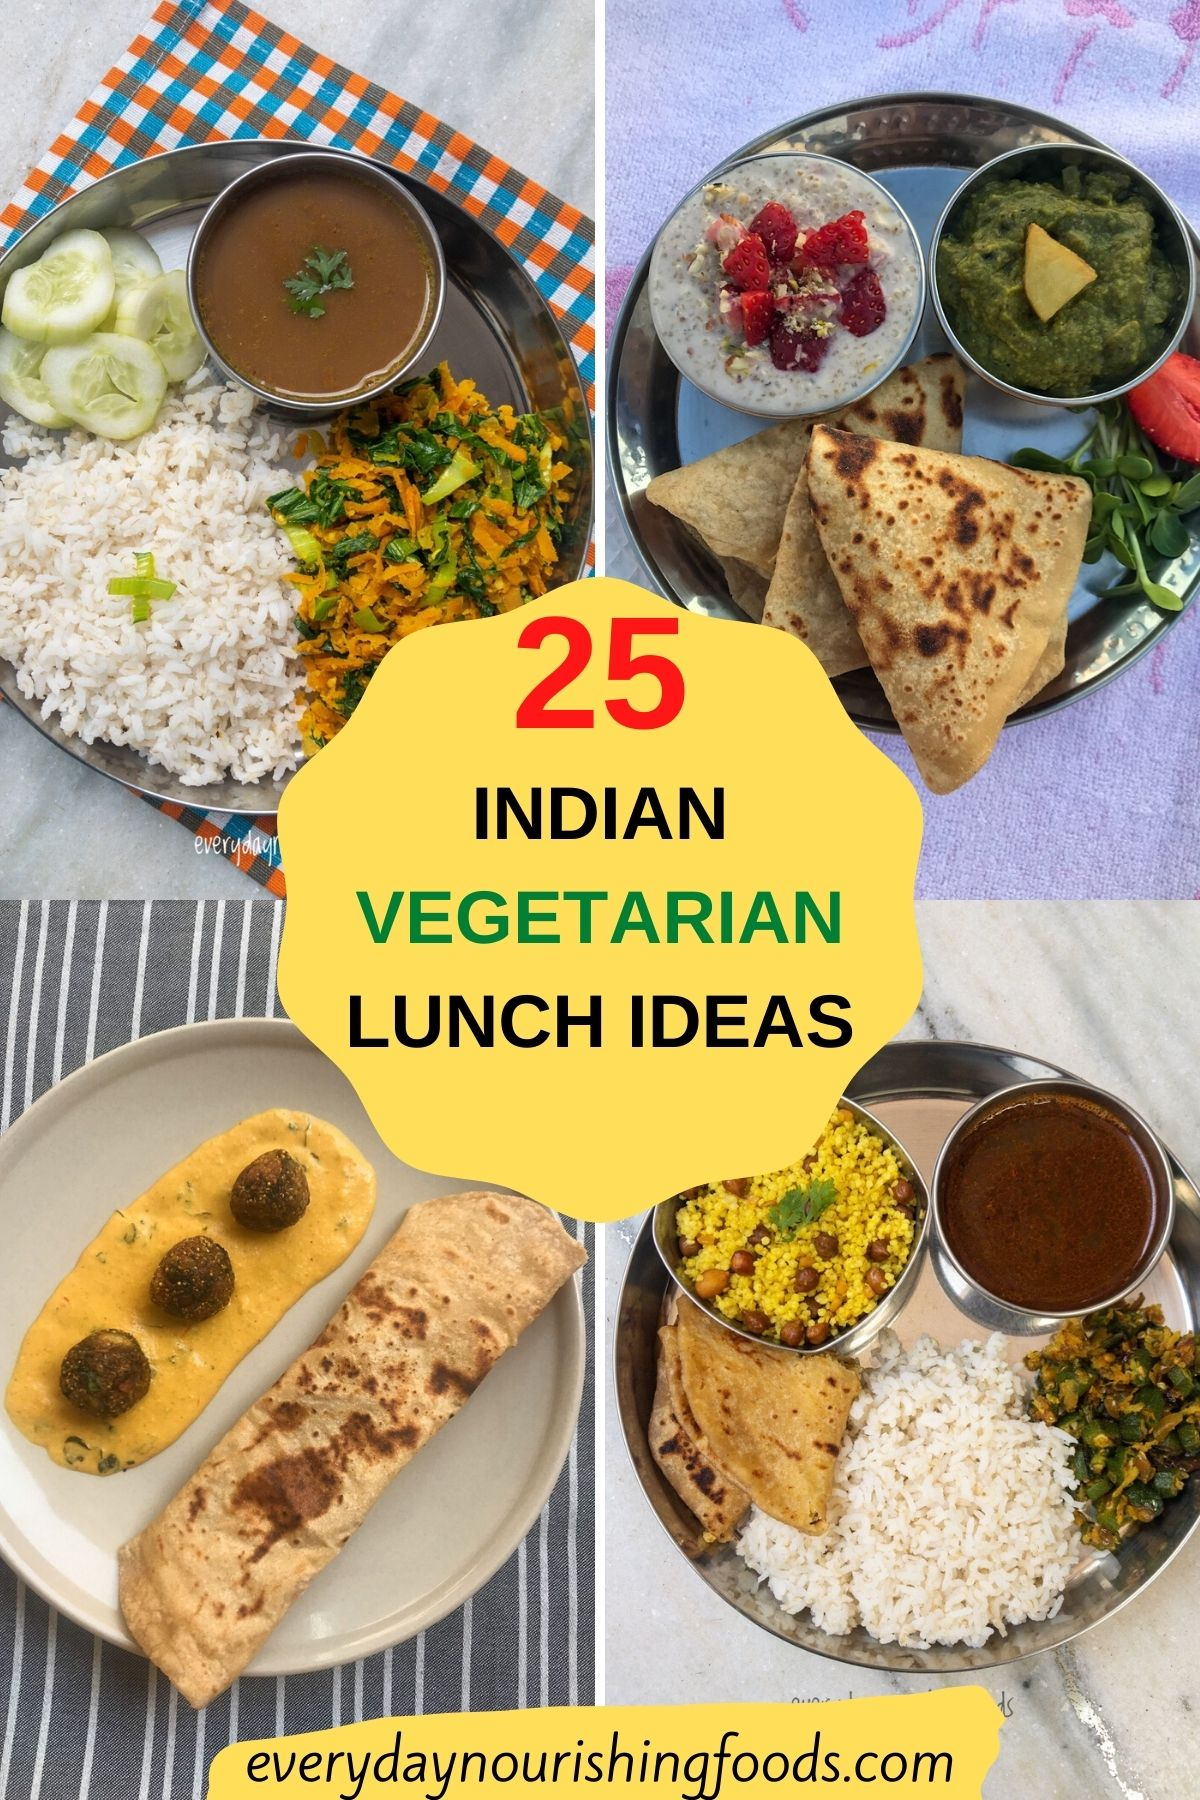 Indian vegetarian lunch ideas image